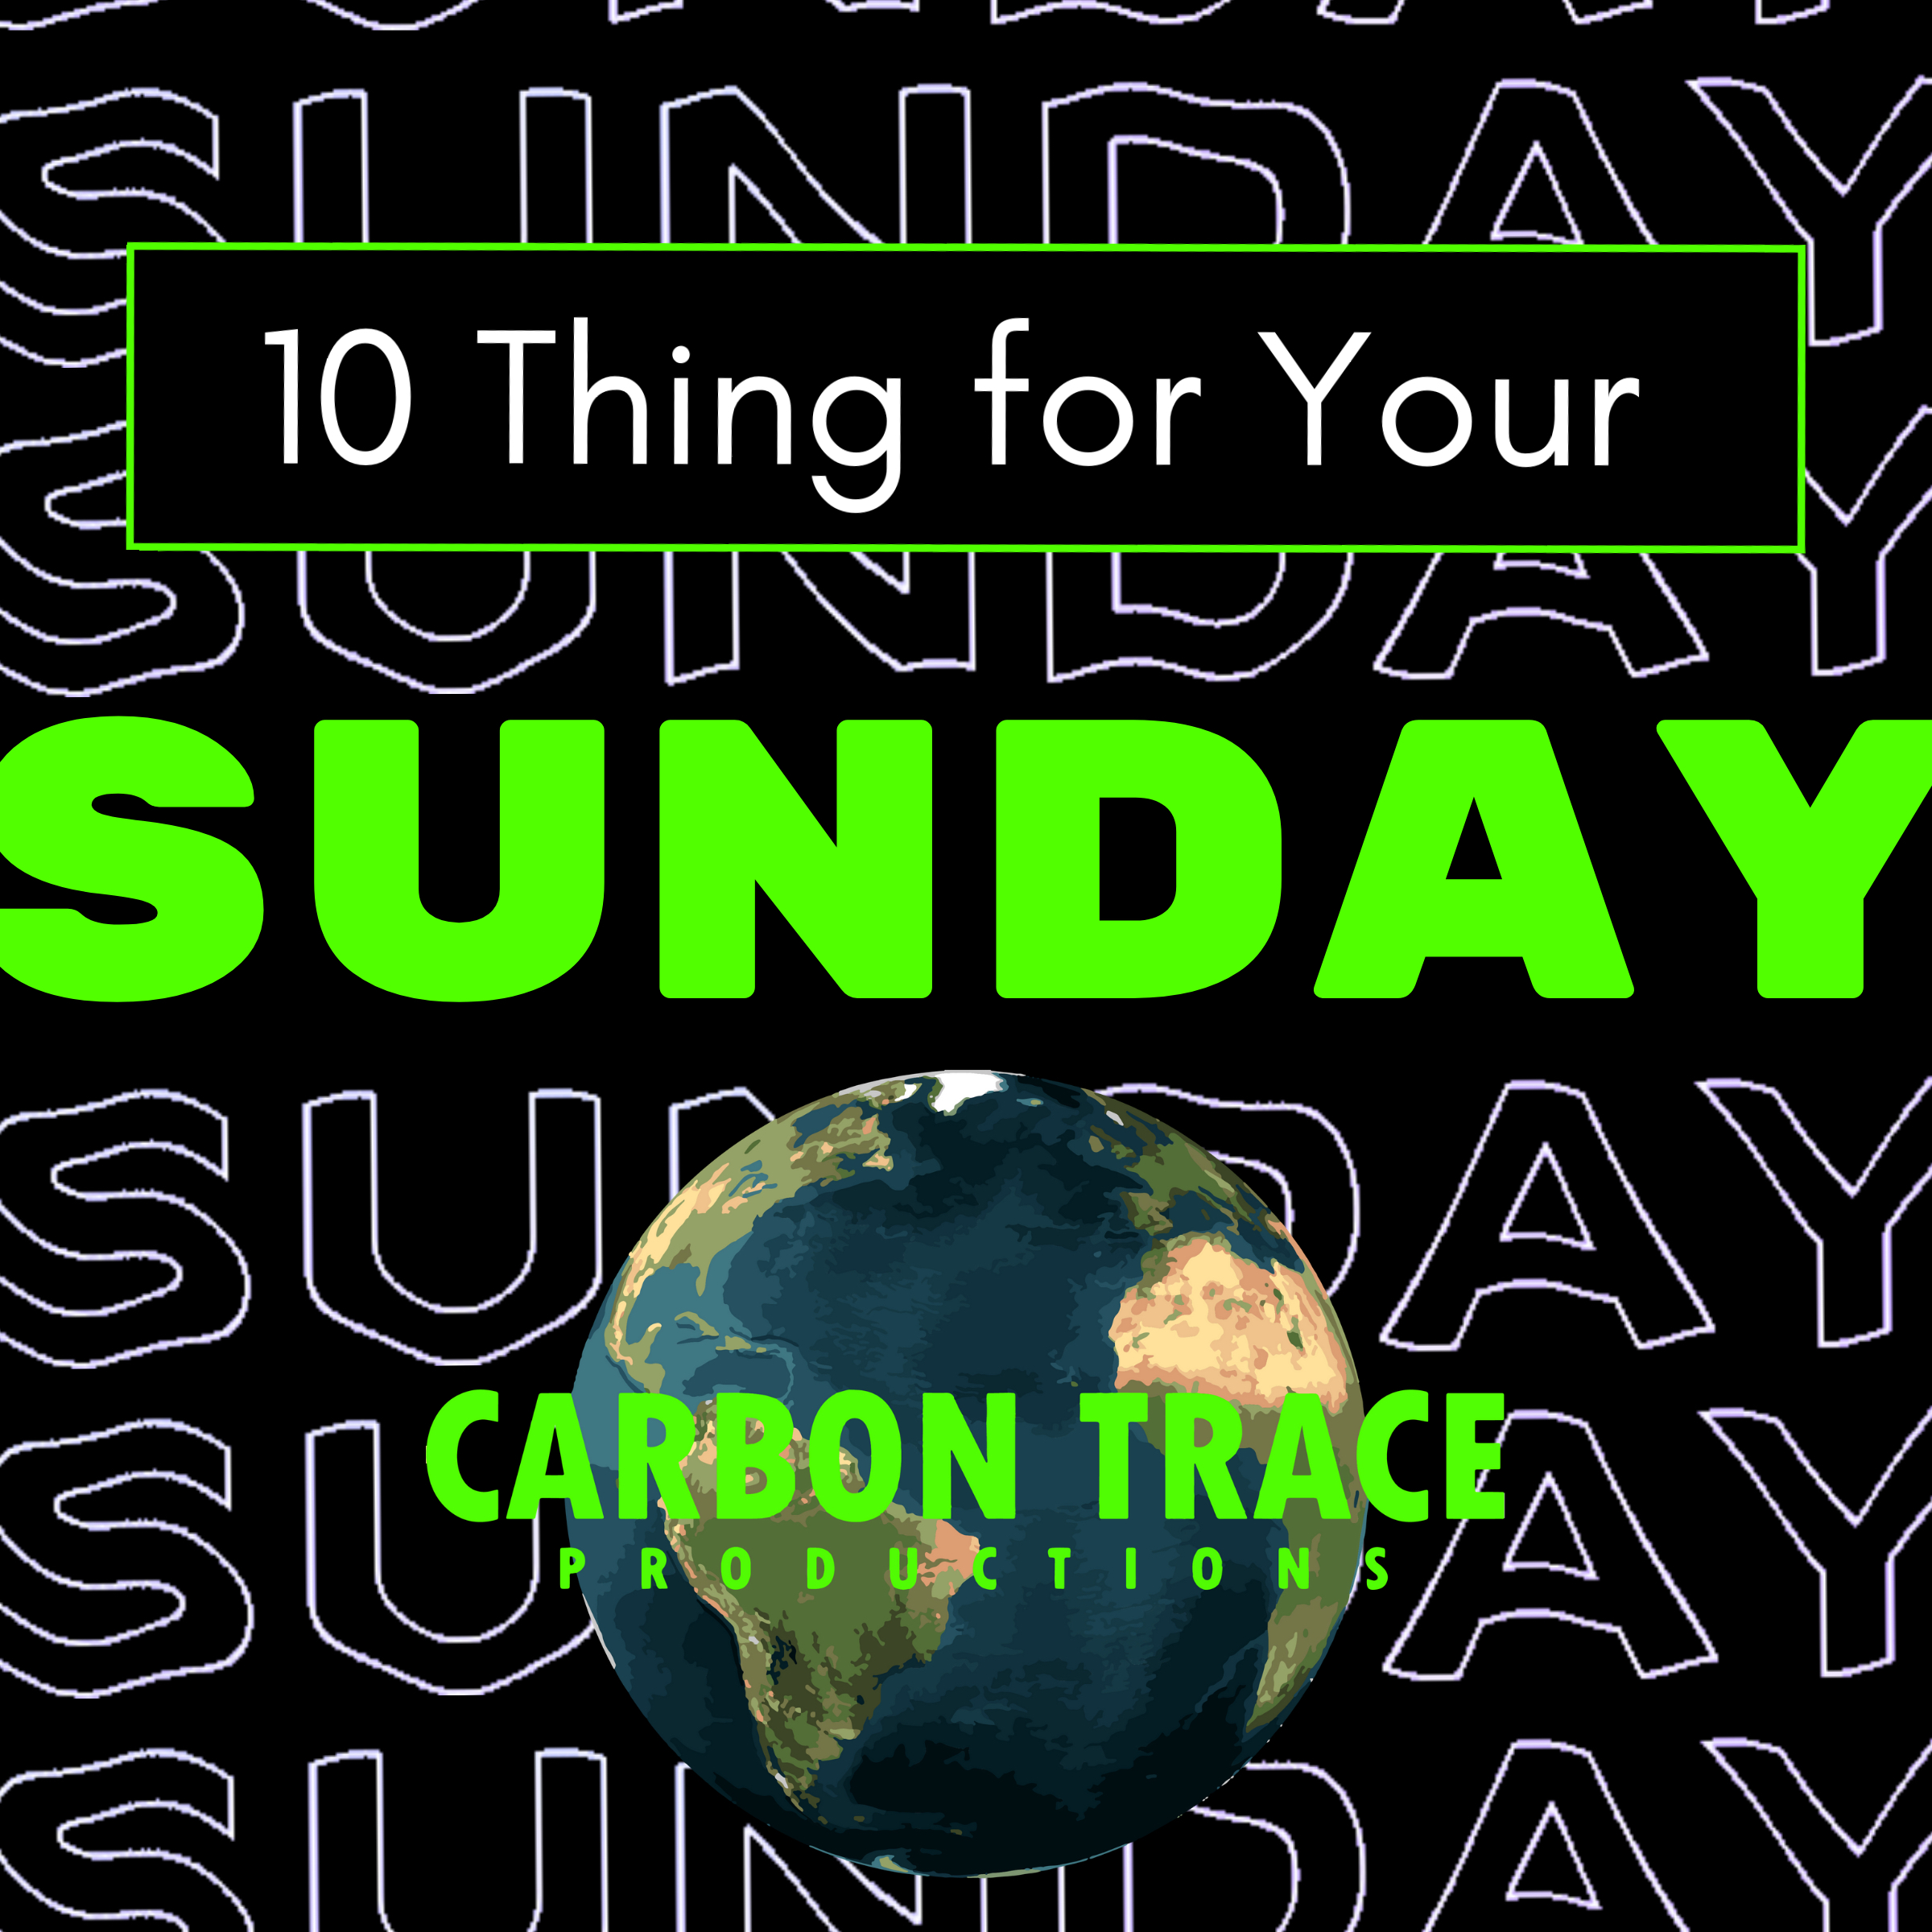 Ten Things for Sunday